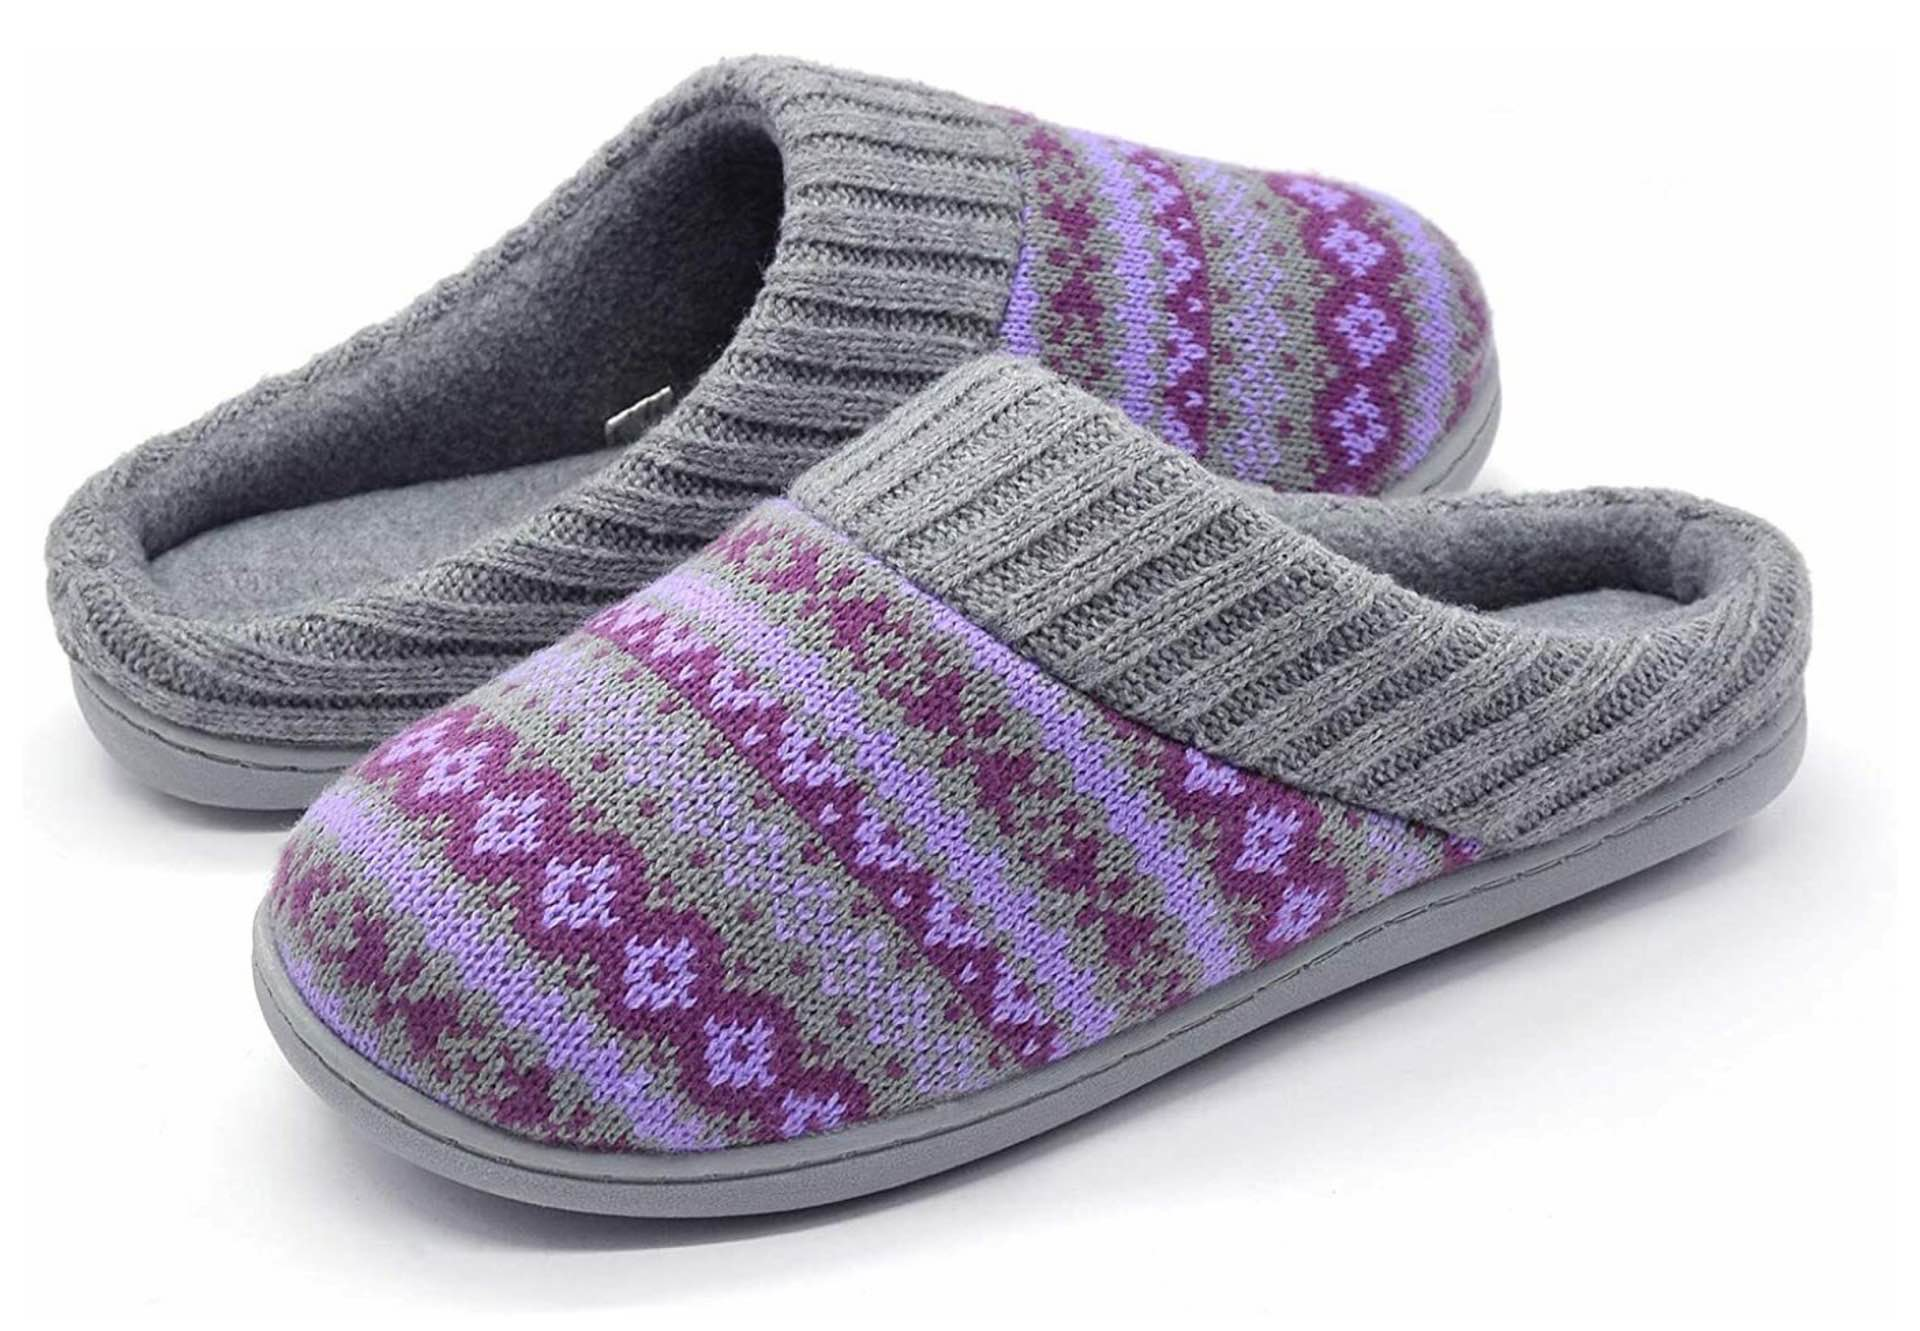 rockdove-fair-isle-sweater-knit-womens-memory-foam-slippers-periwinkle